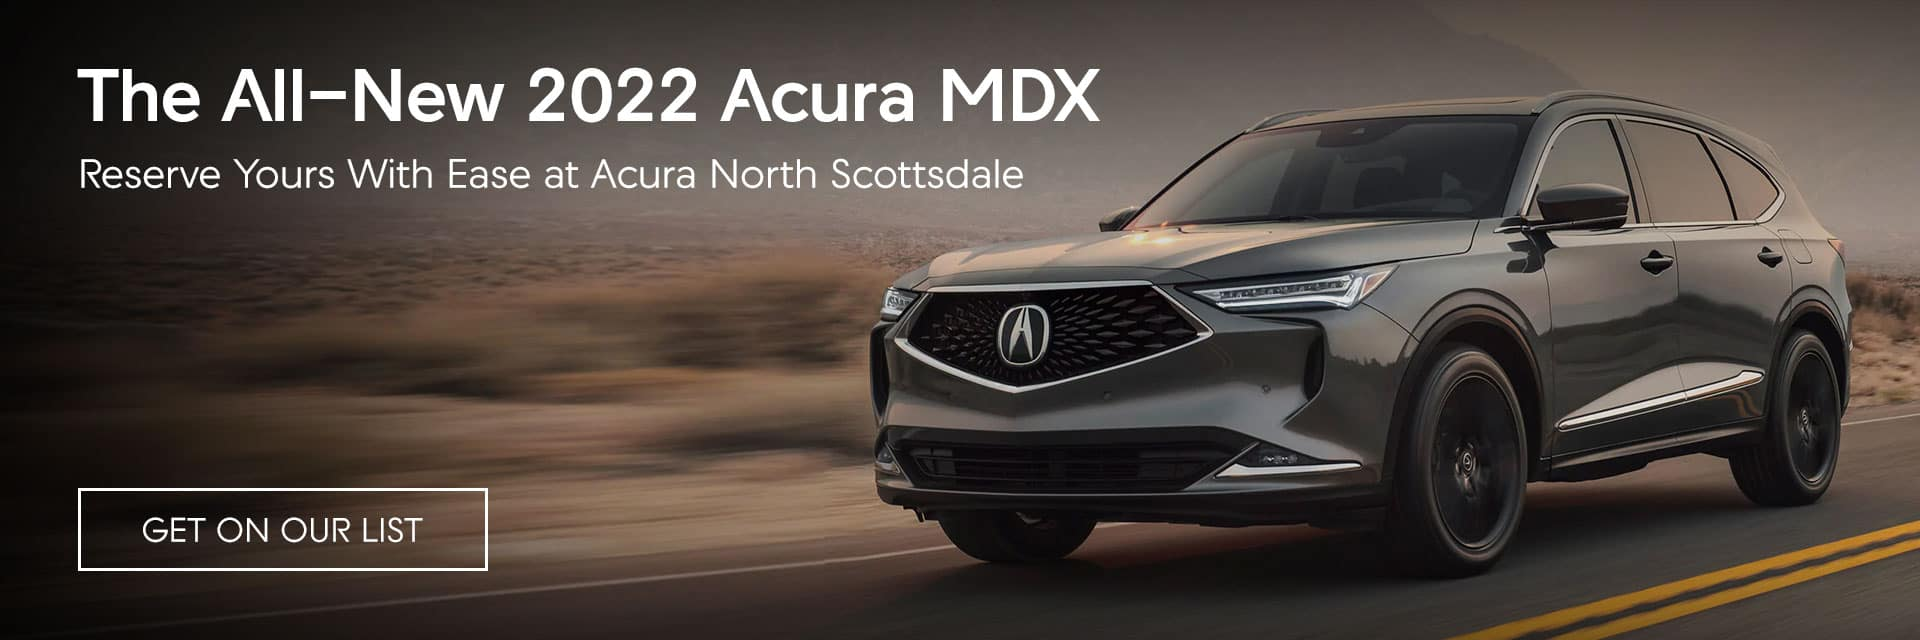 The All-New 2022 Acura MDX